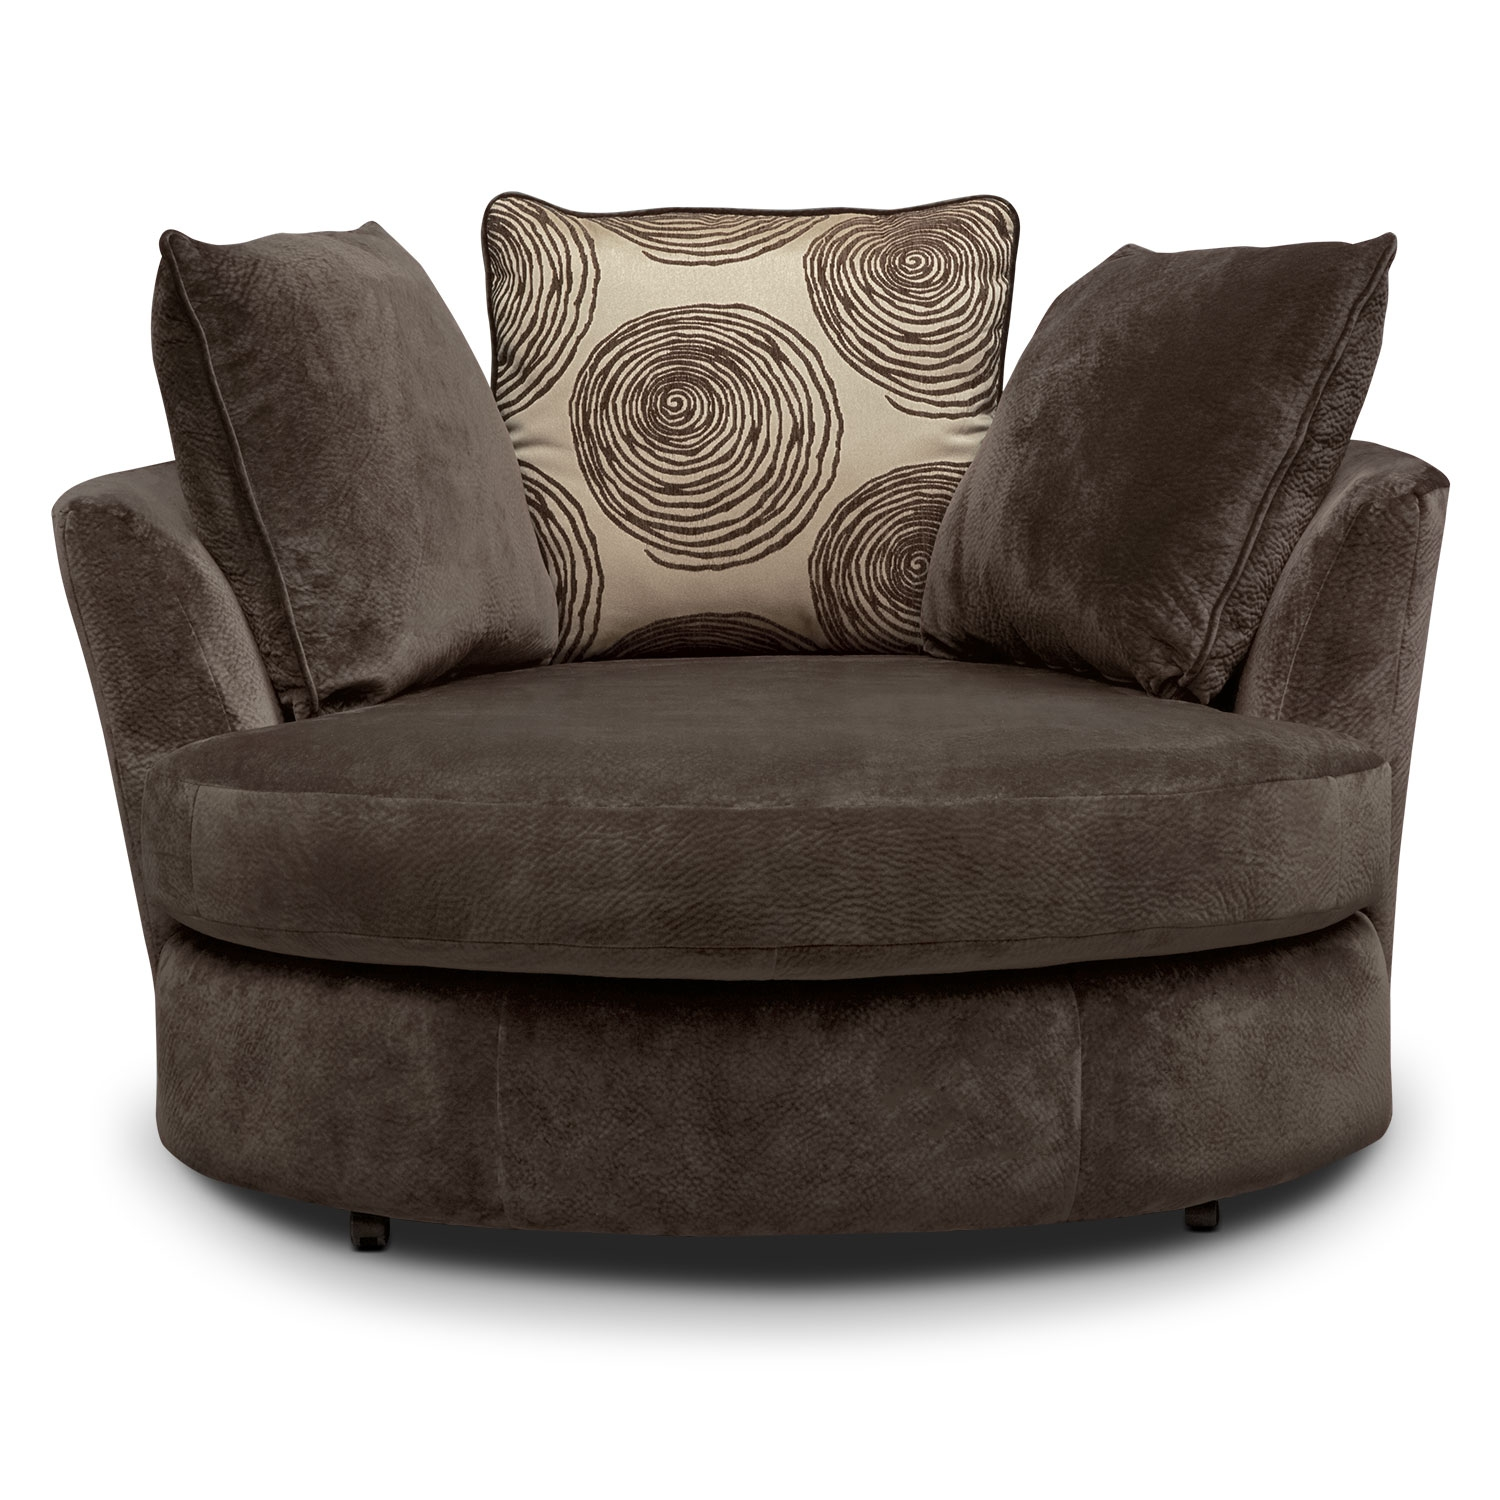 Cordelle Swivel Chair Chocolate Value City Furniture With Regard To Sofa With Swivel Chair (View 3 of 15)